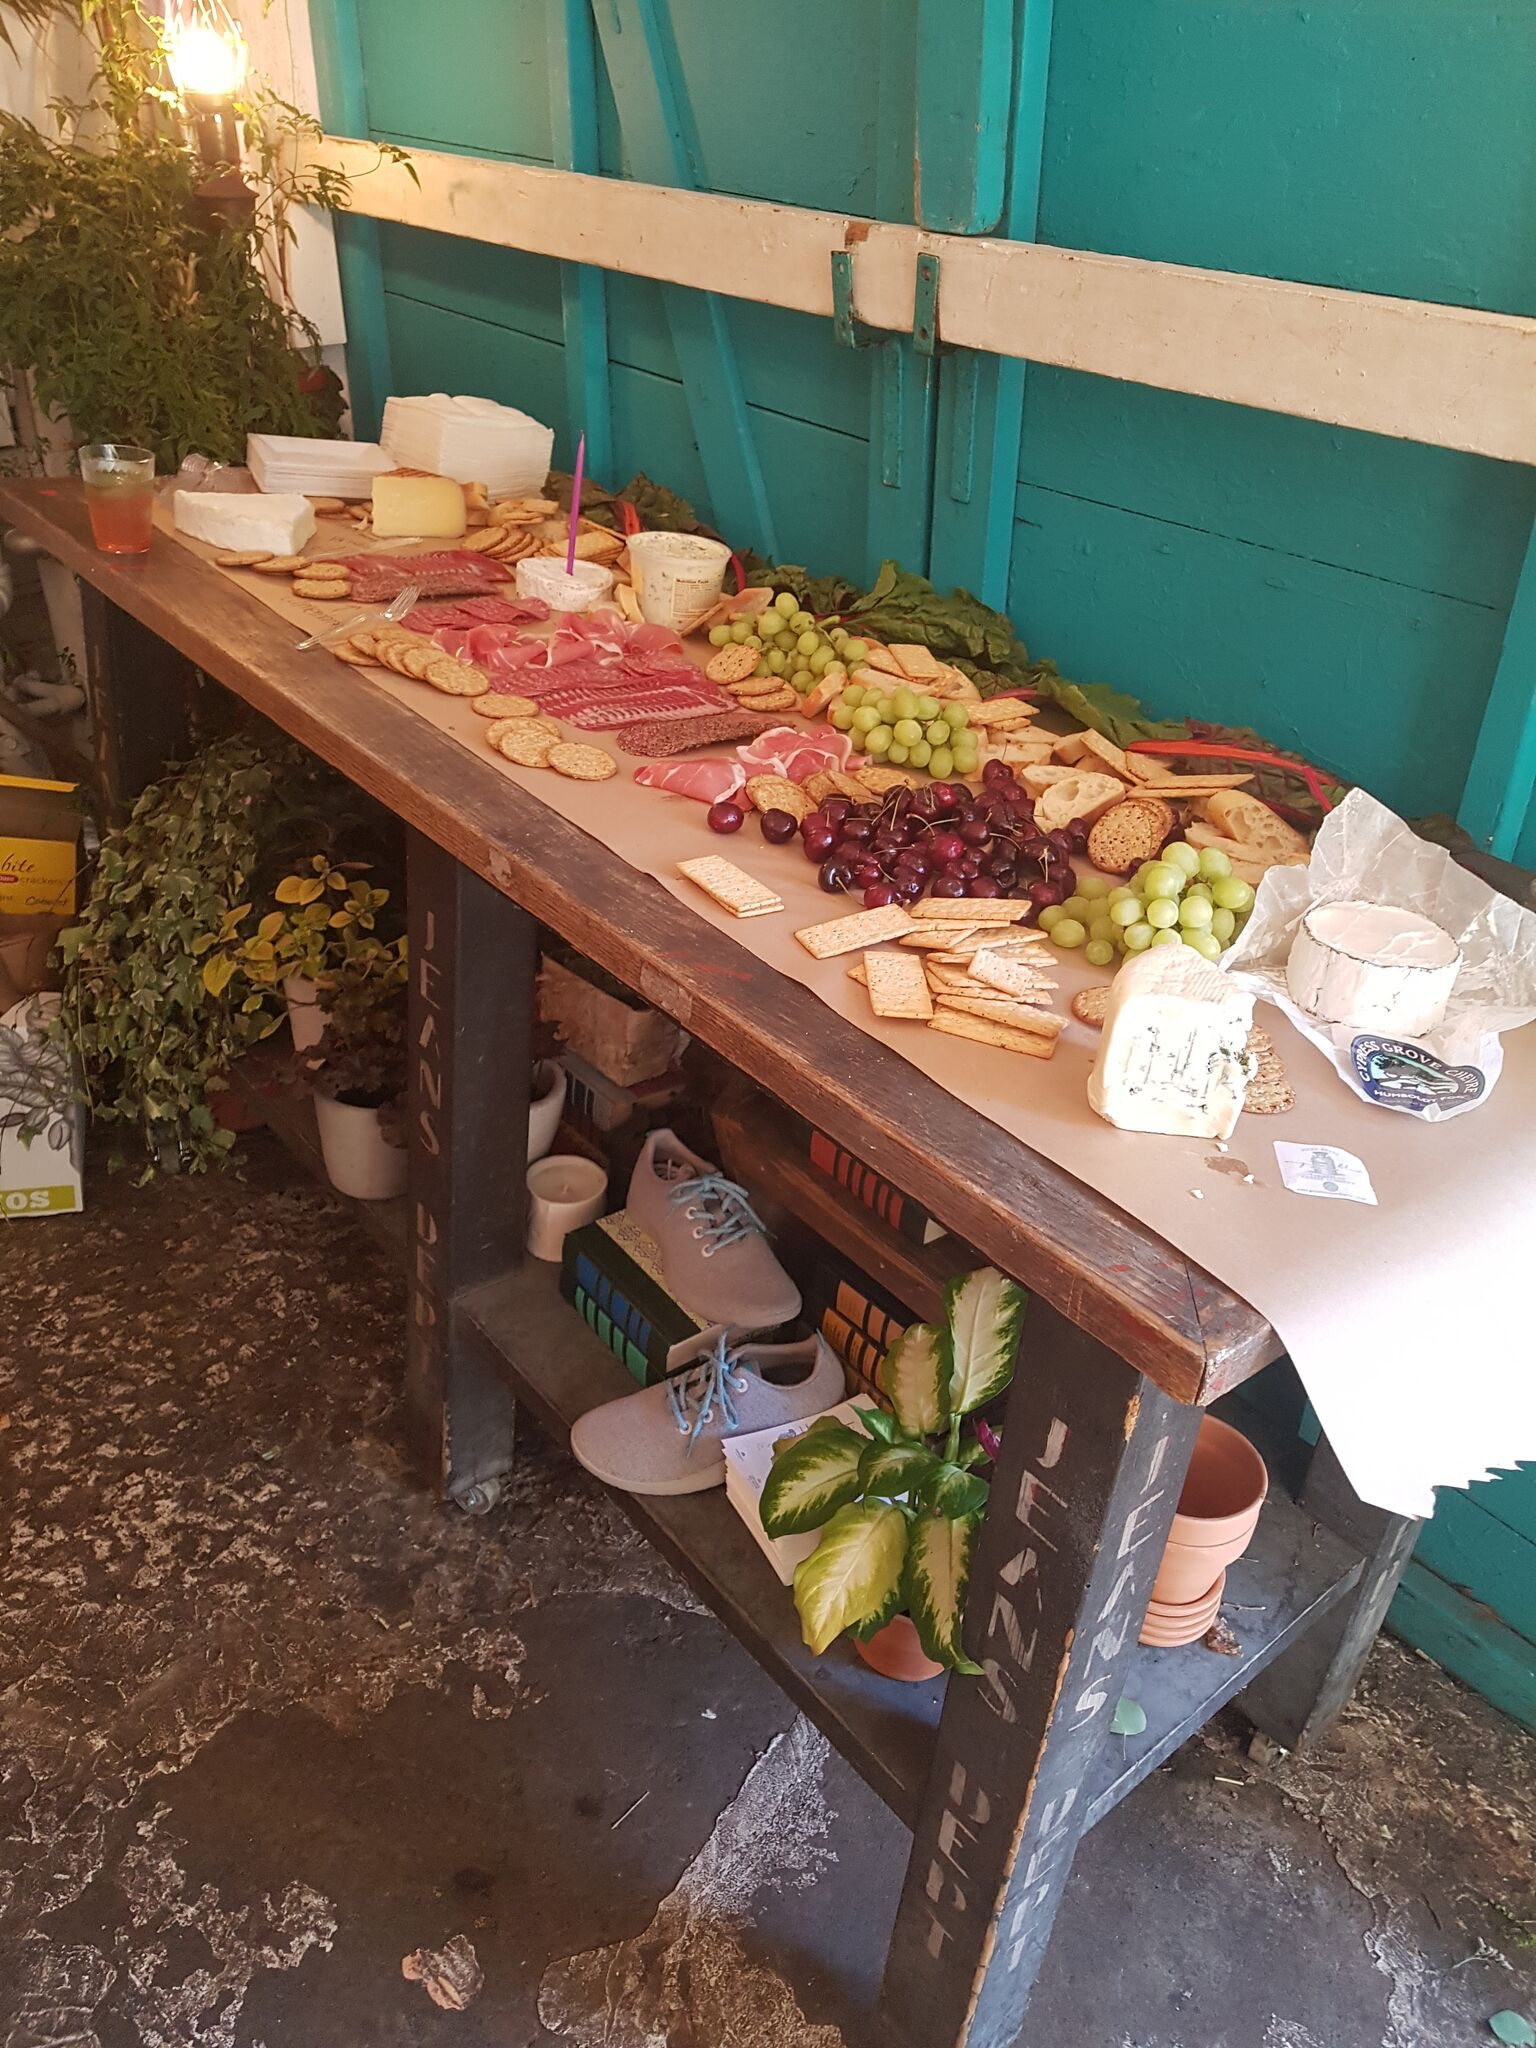 Another view of the charcuterie & cheese station